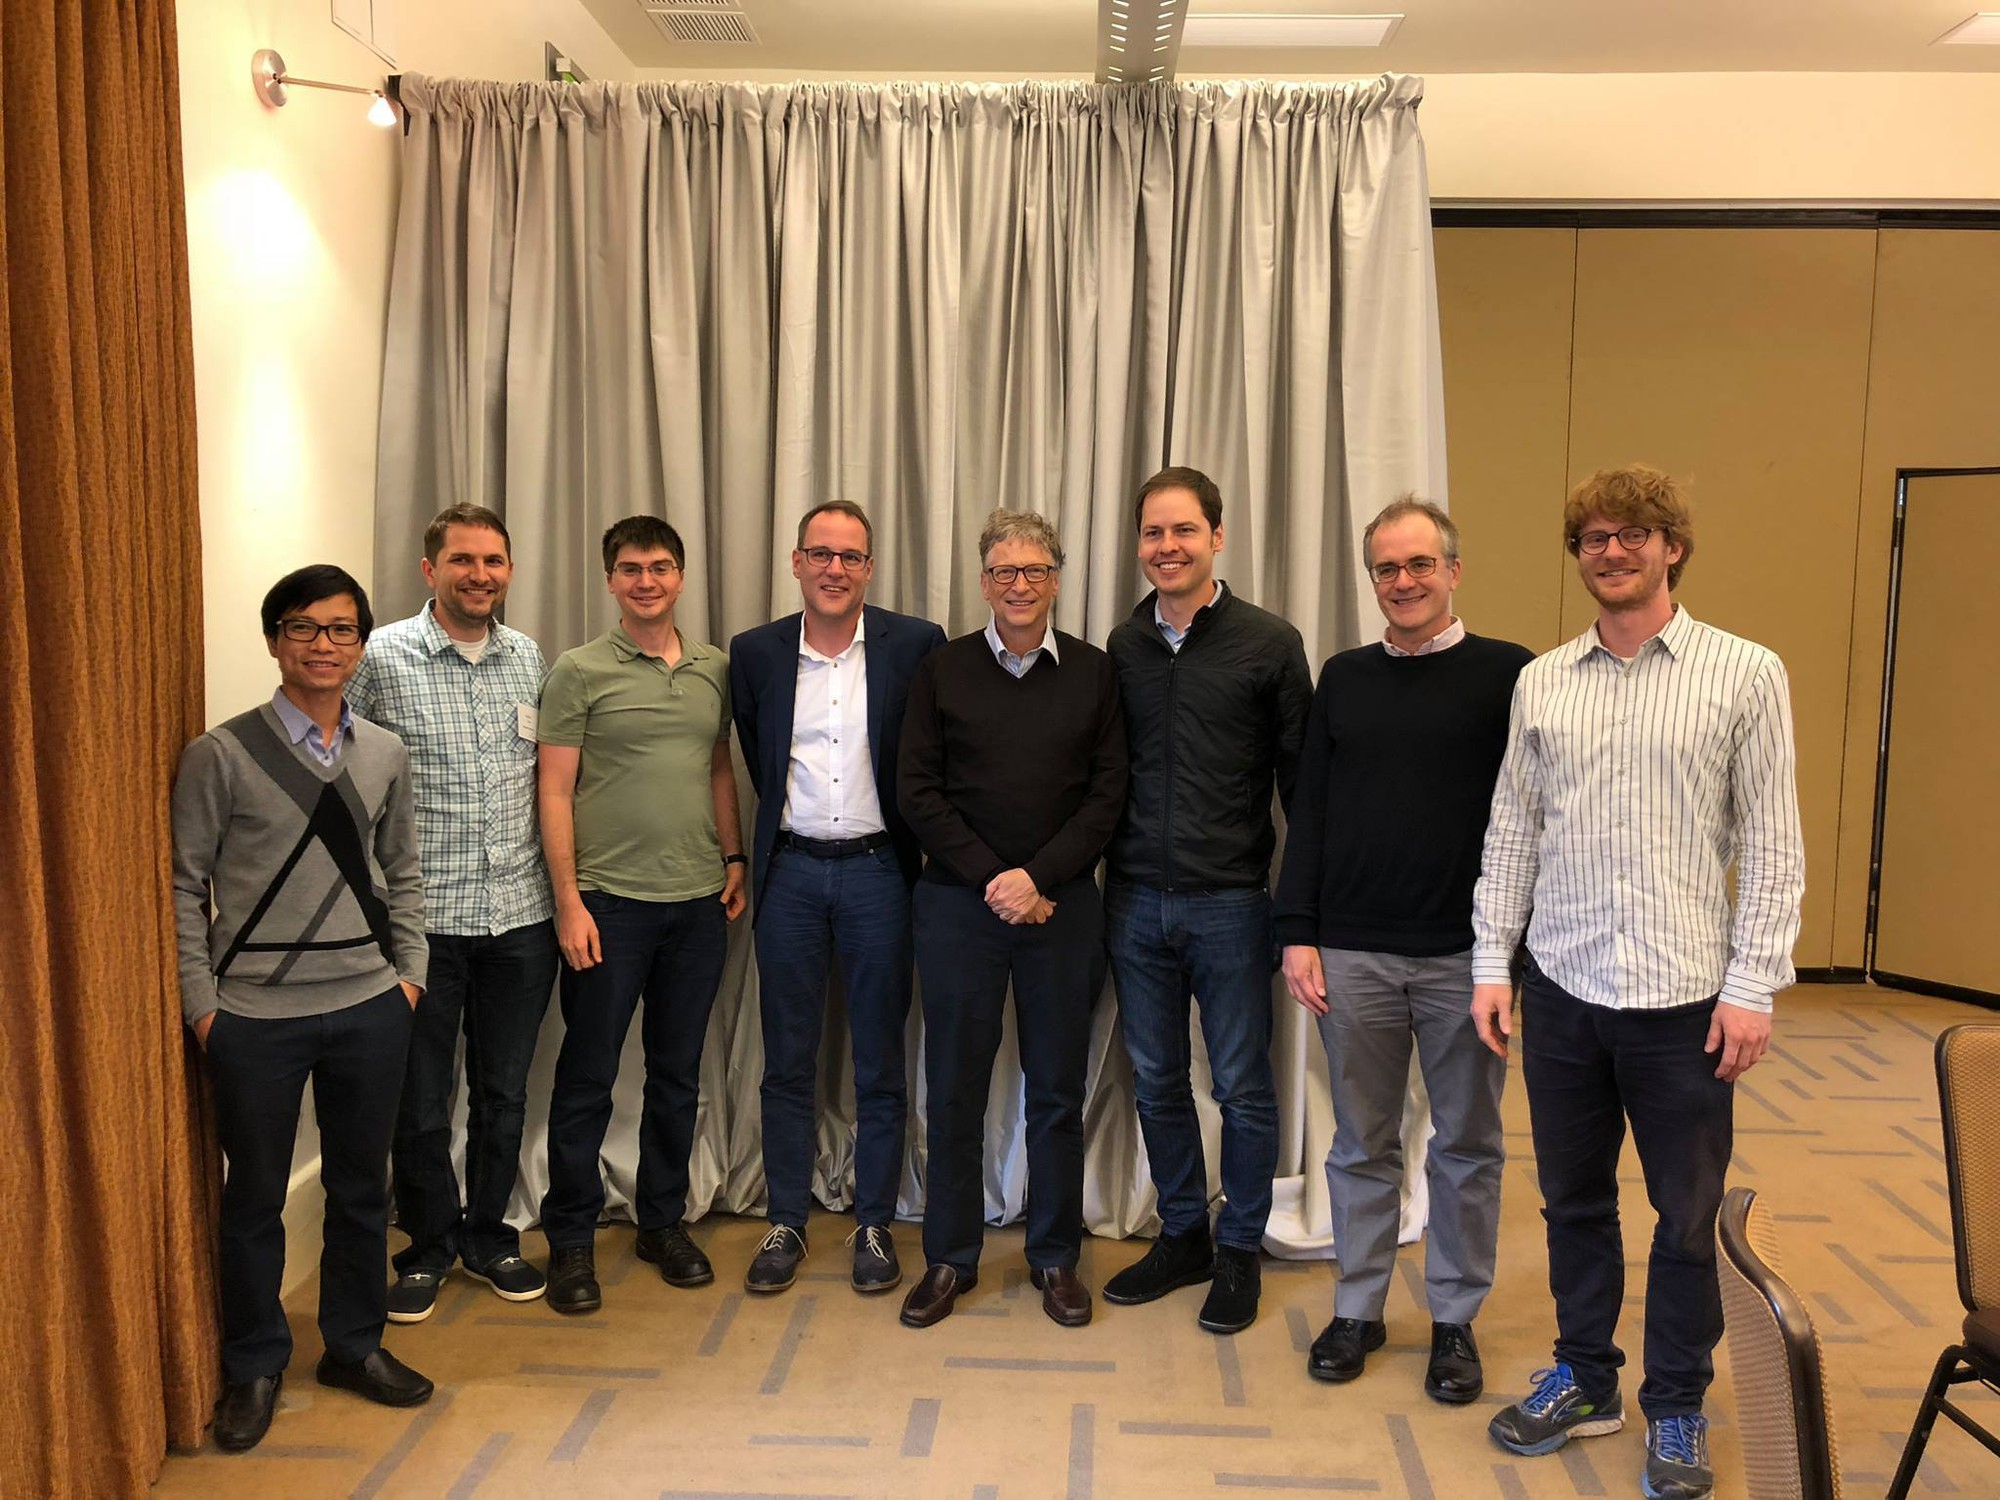 Le Viet Quoc (first left) poses for a picture with Bill Gates and AI experts.